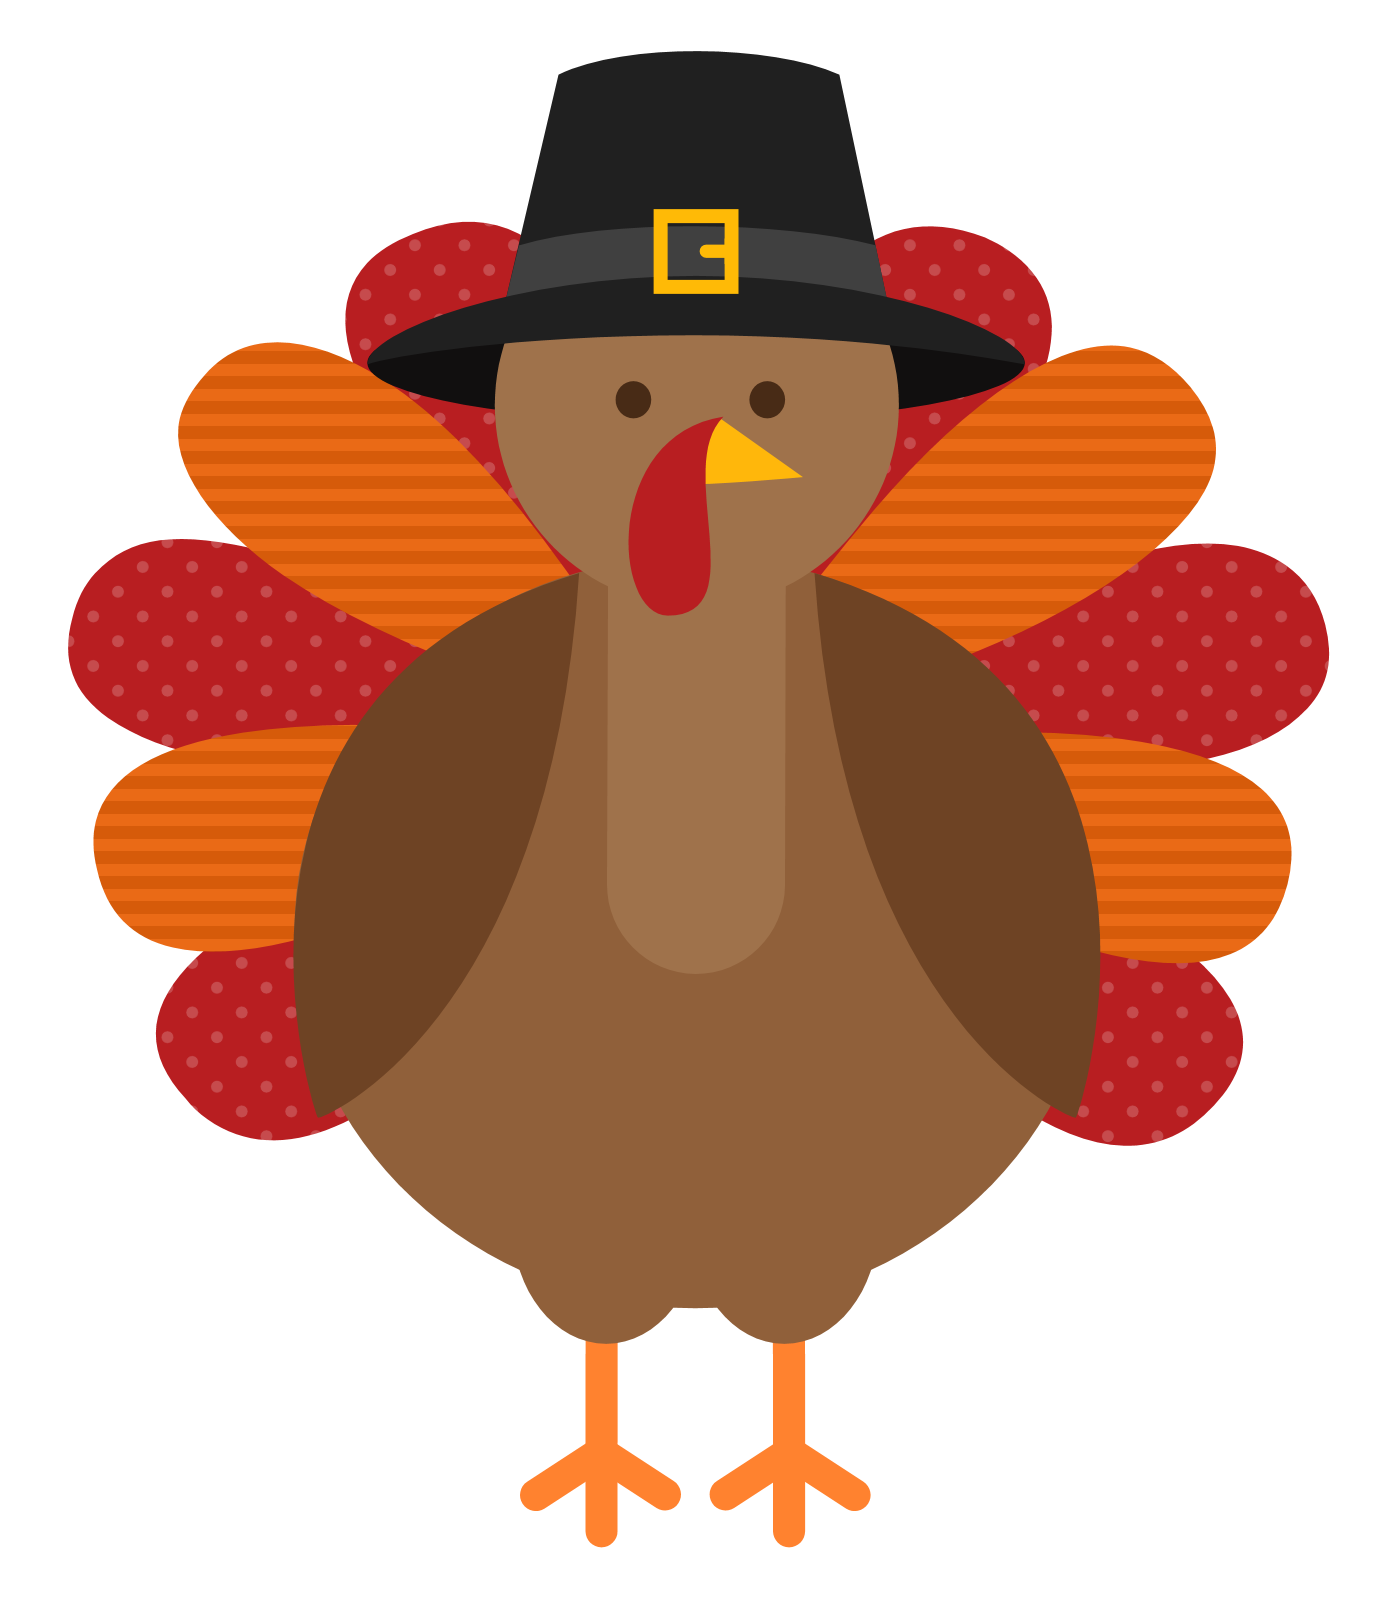 Free turkey clipart thanksgiving clipart library download Blog Archives - Page 7 of 21 - Laurel Ridge Golf Club, NC clipart library download